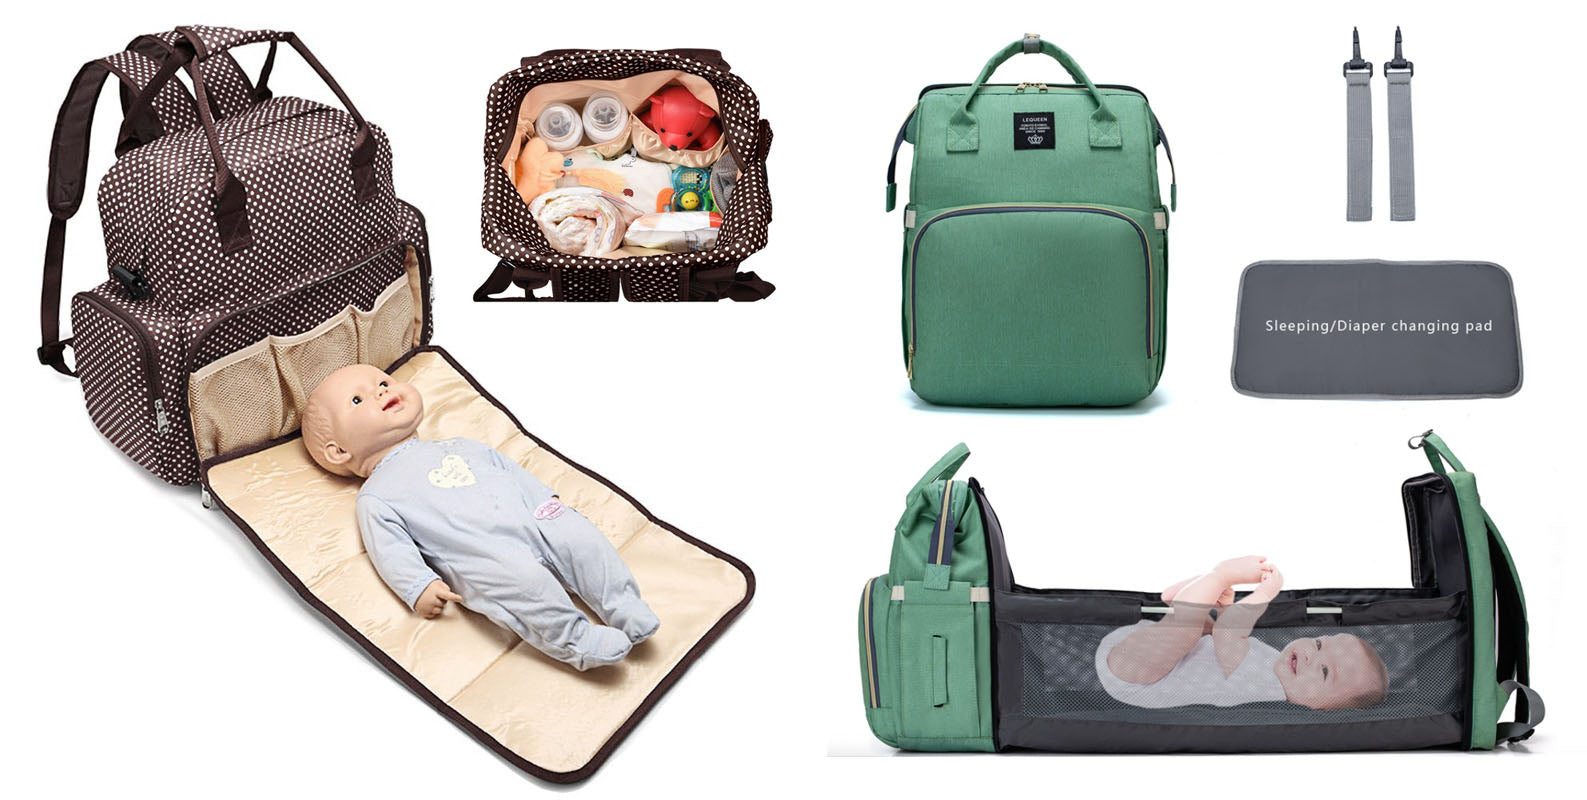 BABY CHANGE BAG CHANGE MAT 2 IN 1 MULTIFUNCTIONAL PRODUCT